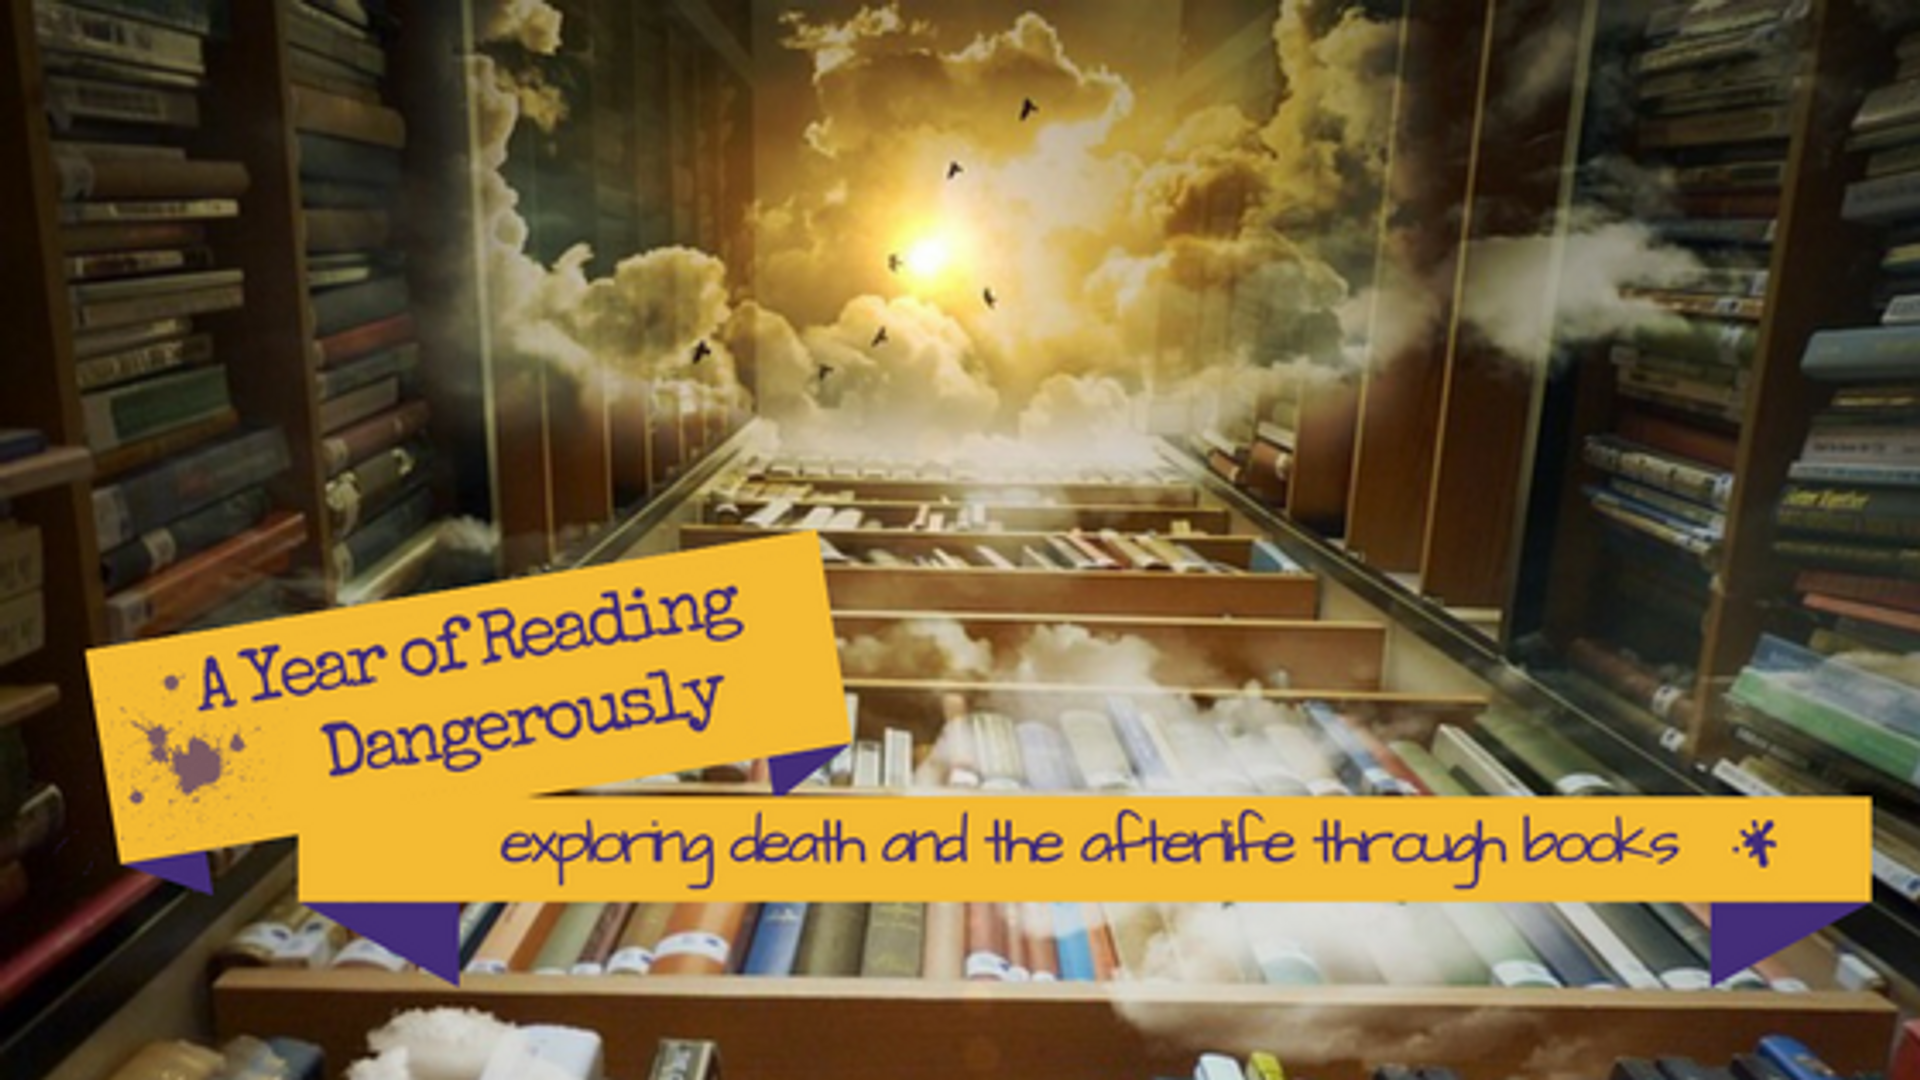 Exploring death and afterlife through books.png